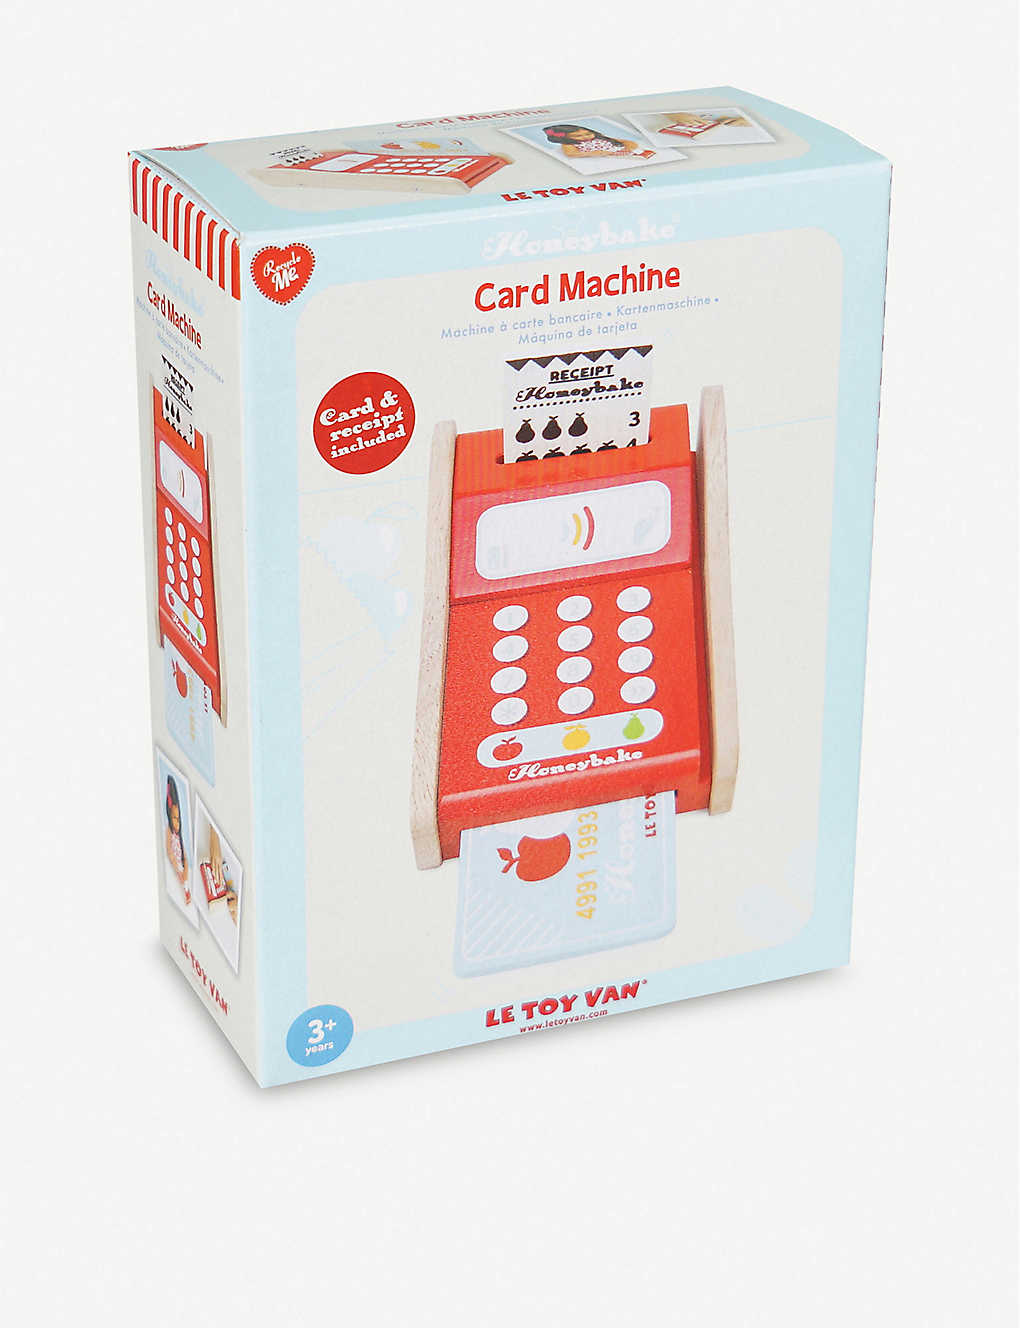 LE TOY VAN: Card Machine